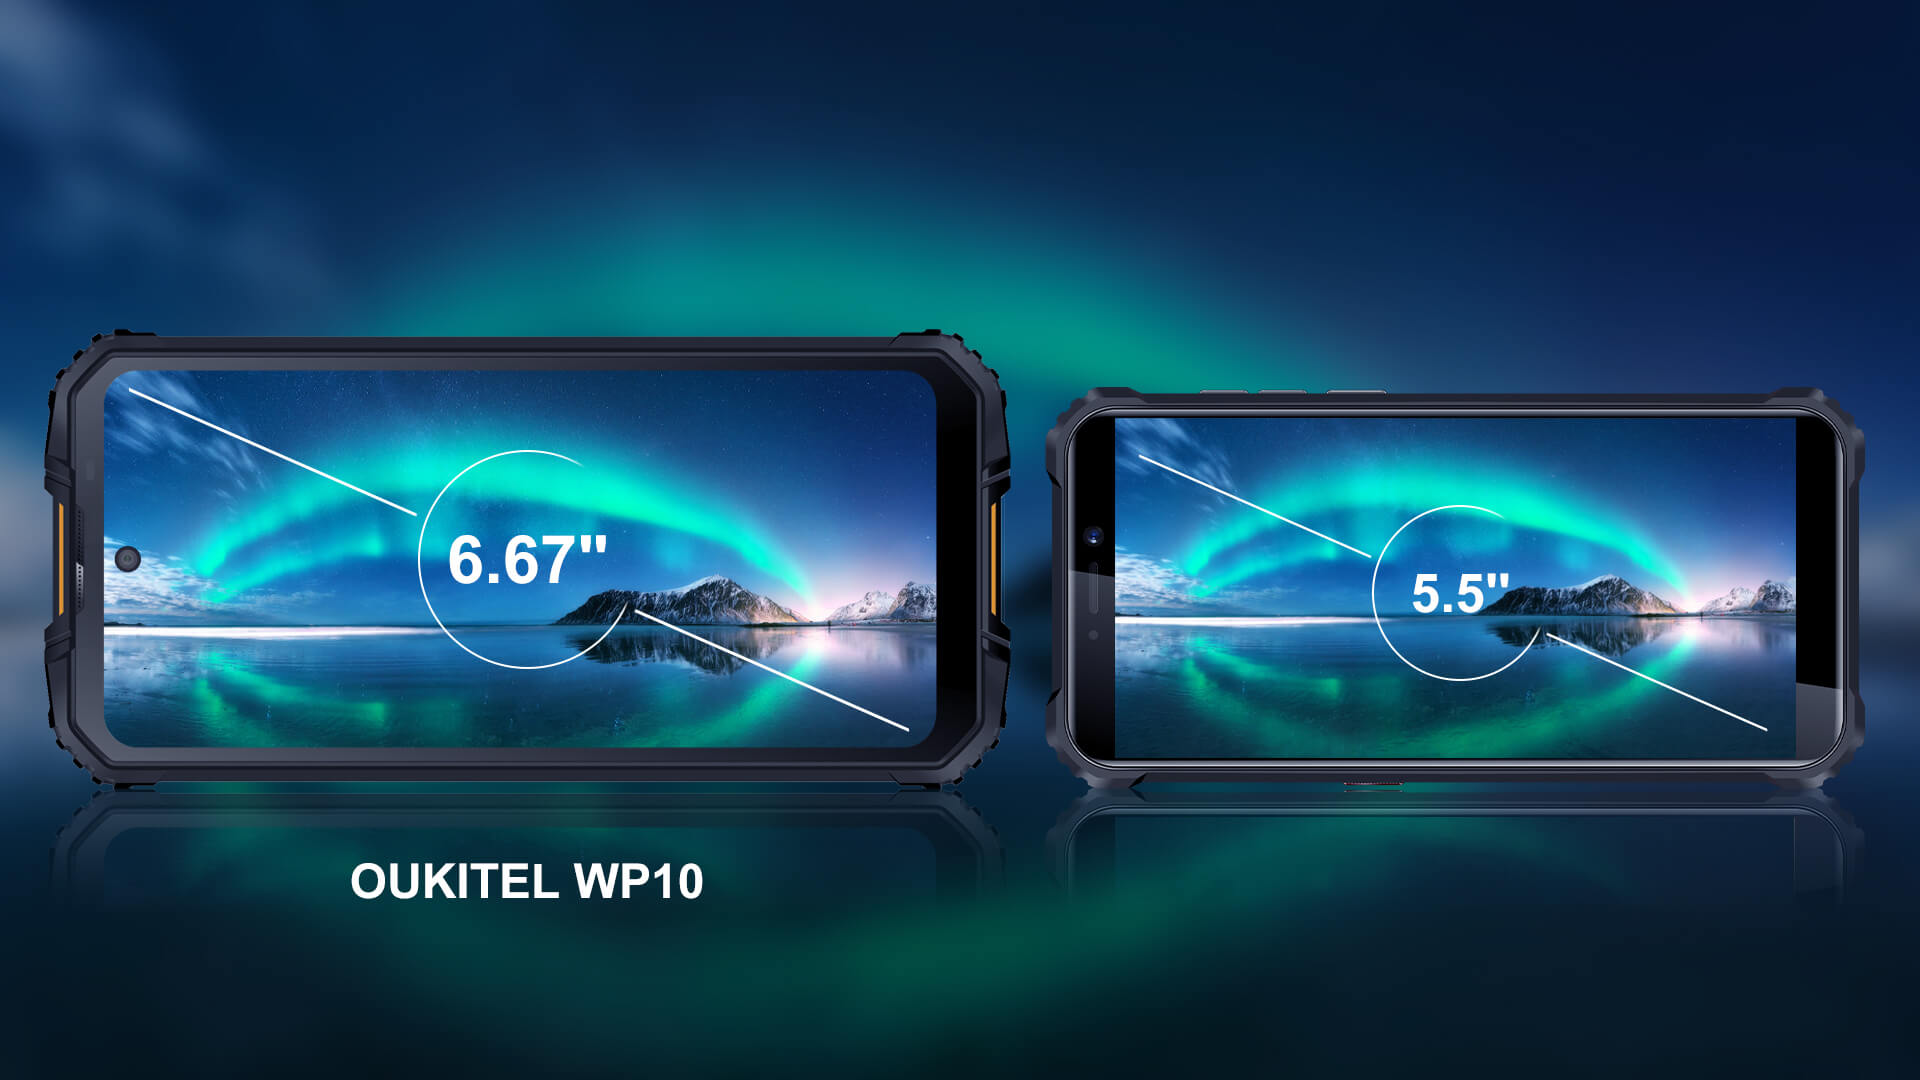 oukitel full screen display